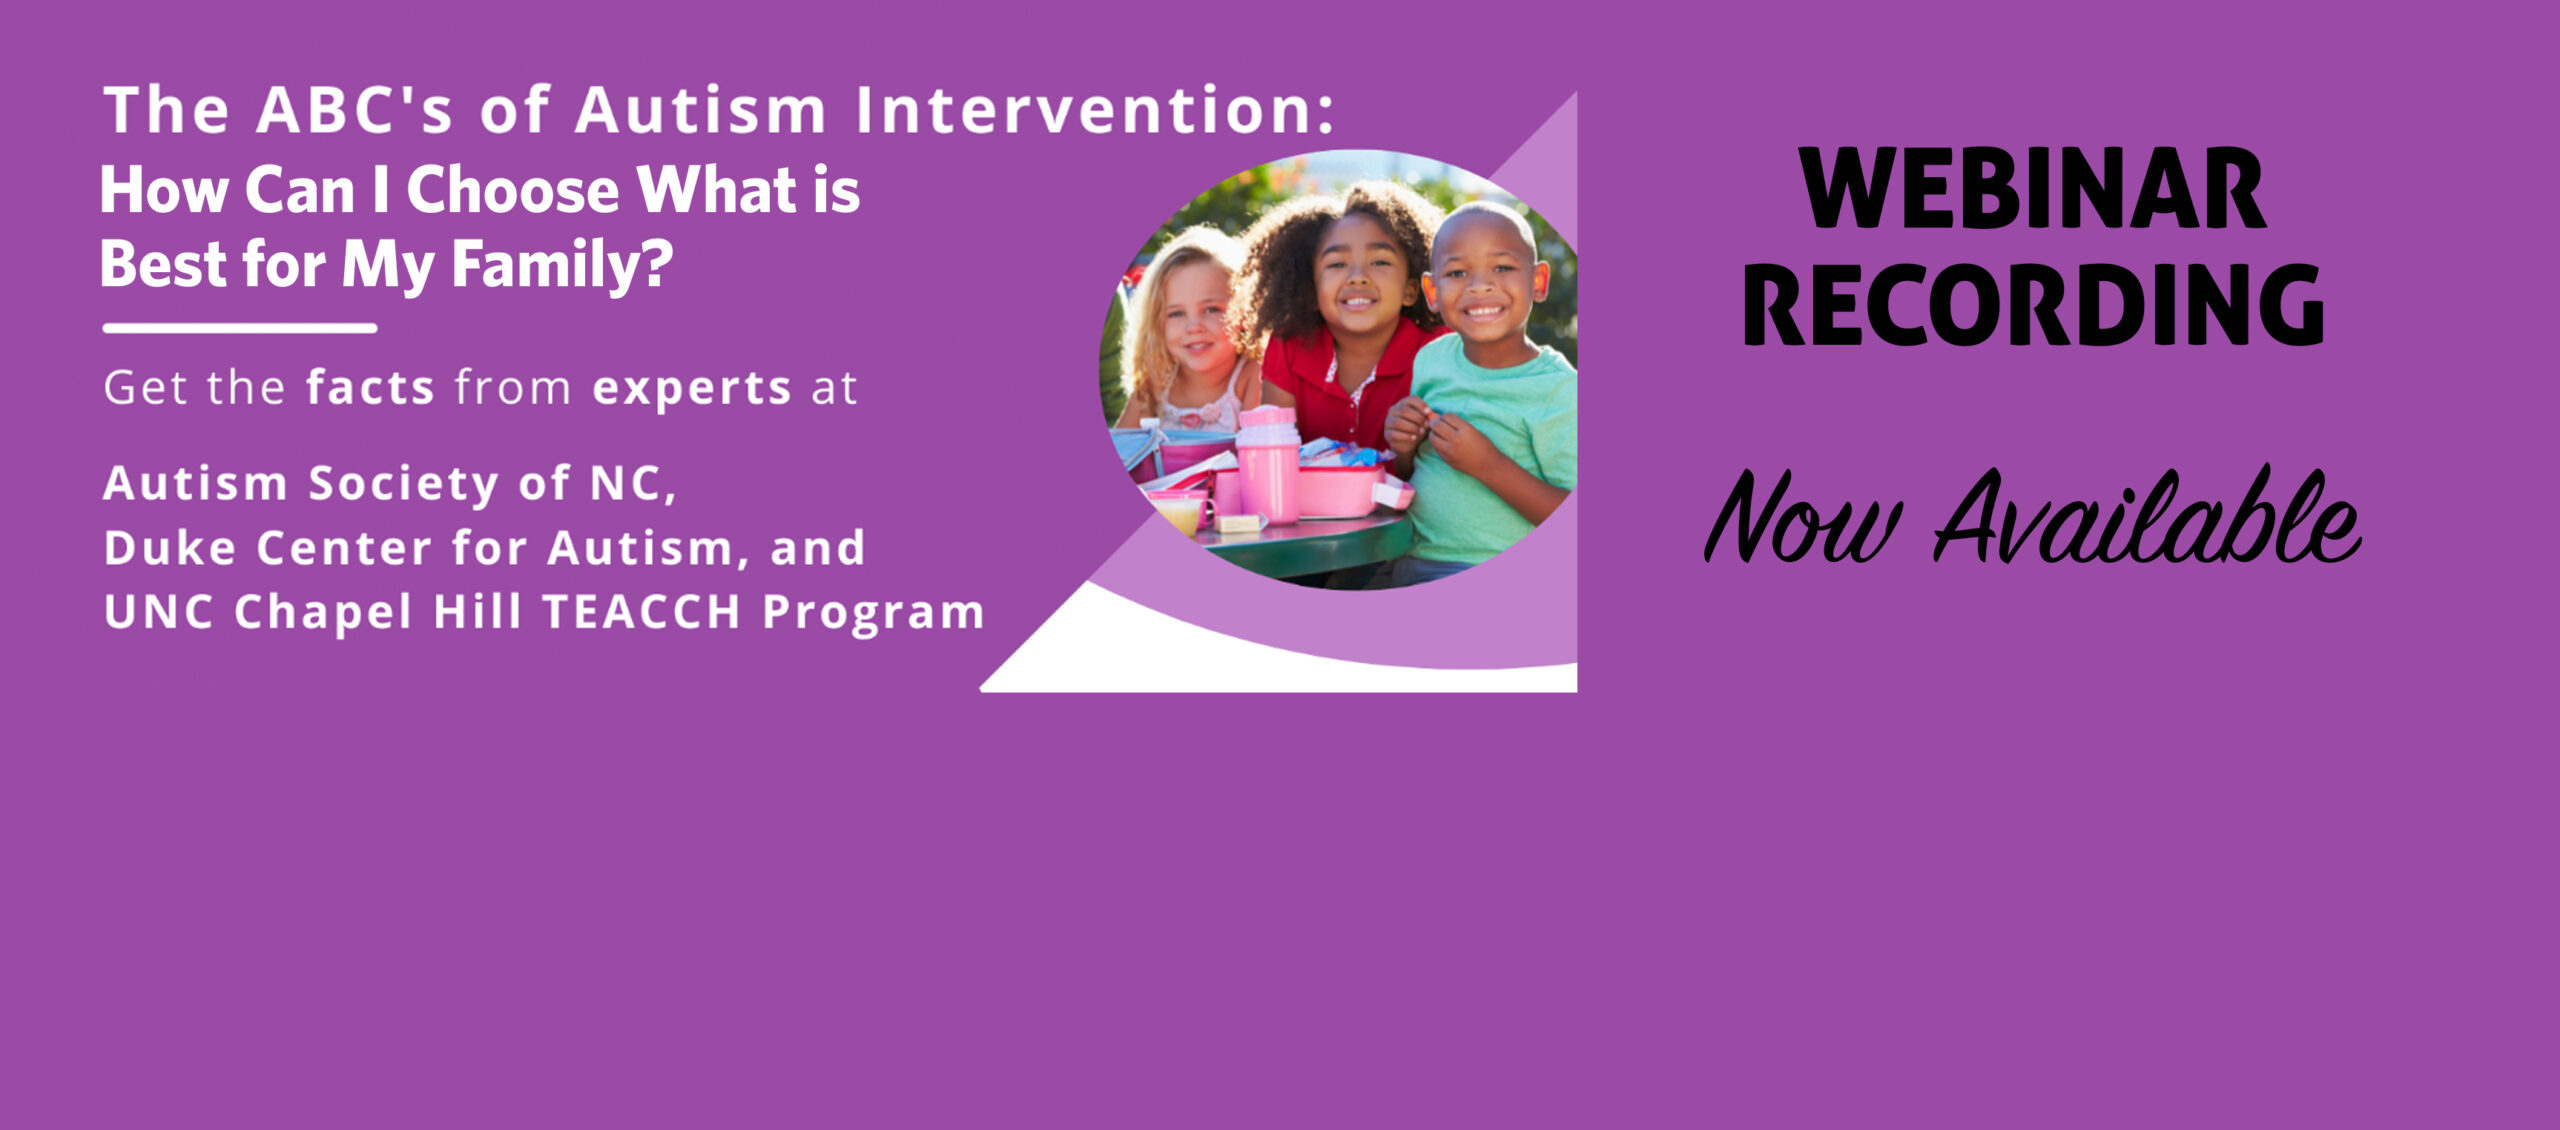 The ABC's of Autism Intervention Webinar